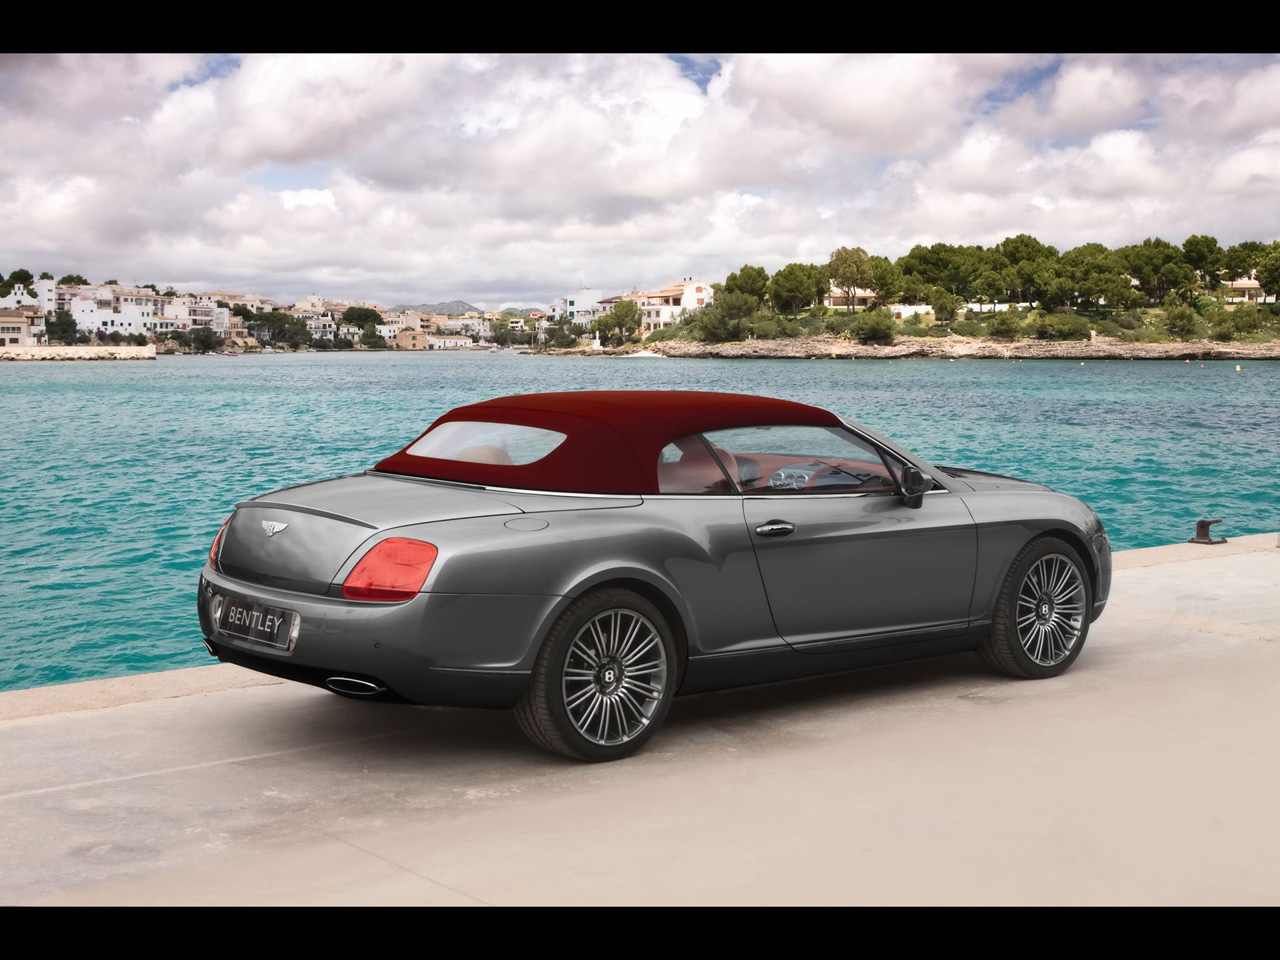 2009 Bentley Continental Gtc #13